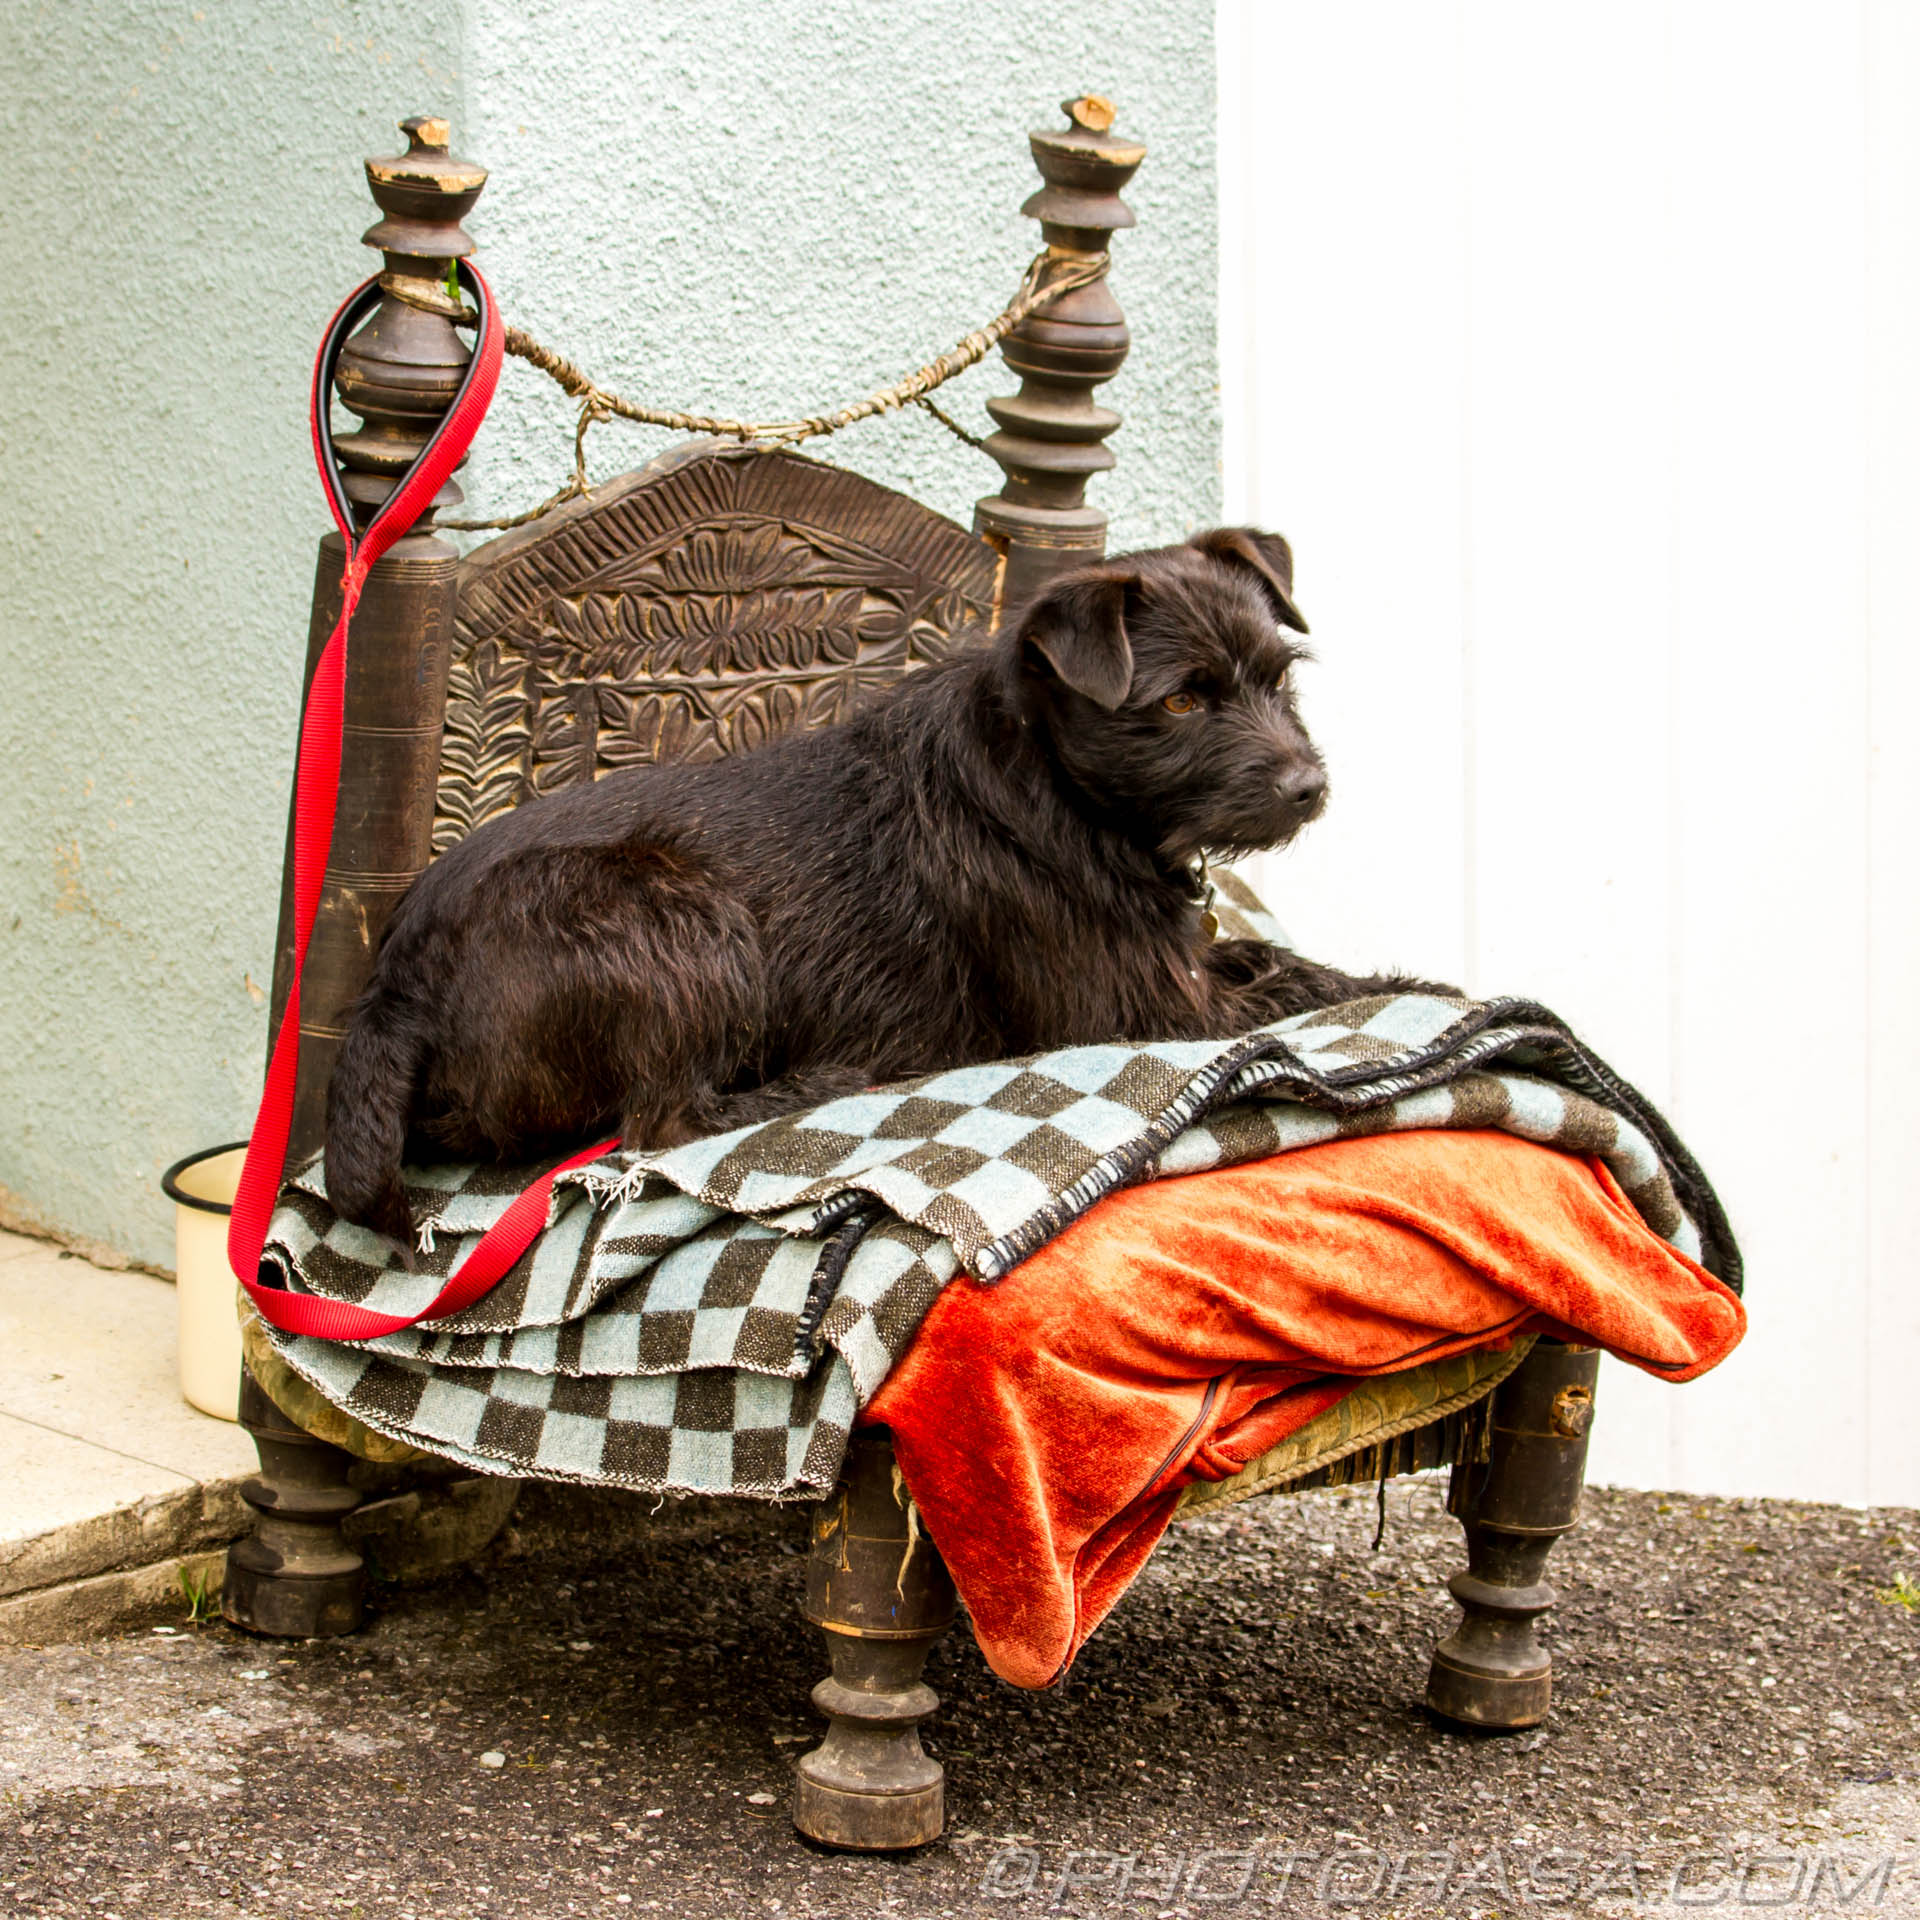 https://photorasa.com/princely-terrier/brown-terrier-sitting-on-his-carved-throne/